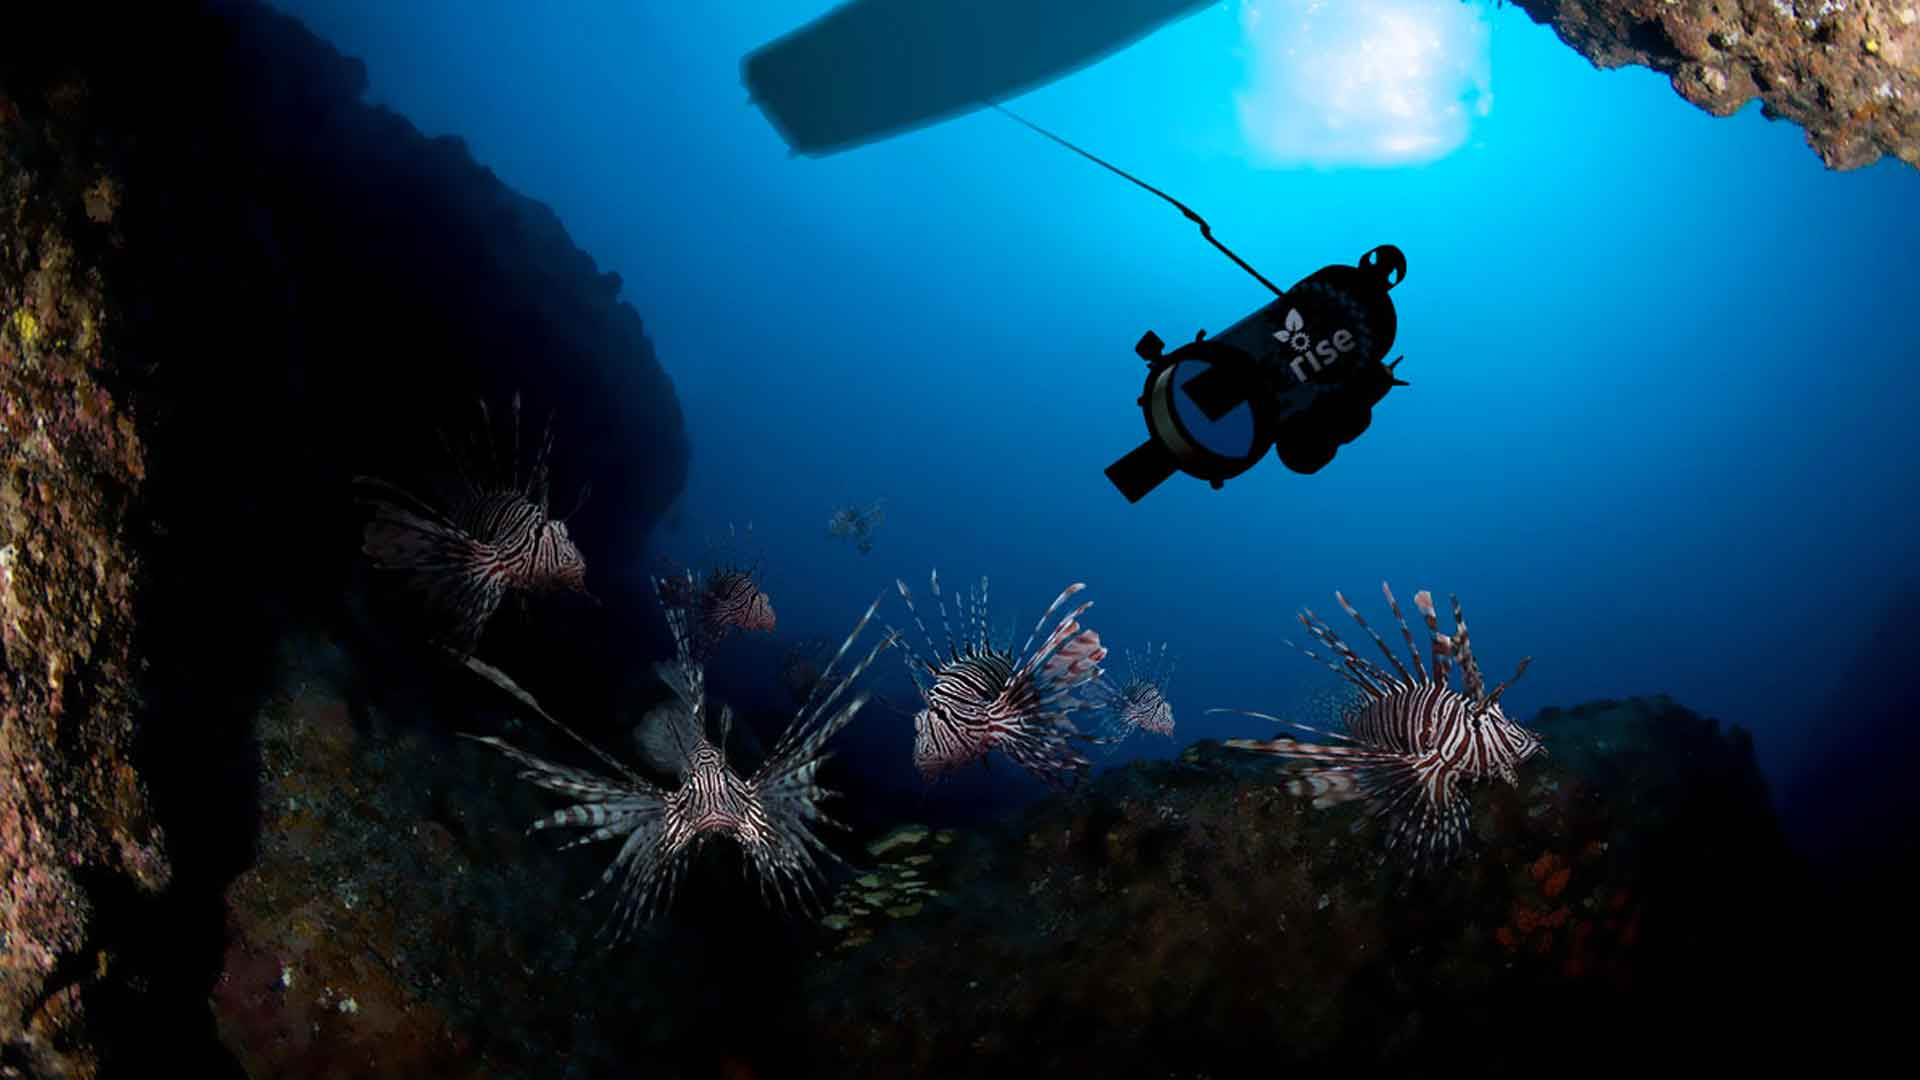 Rise robot collecting lionfish